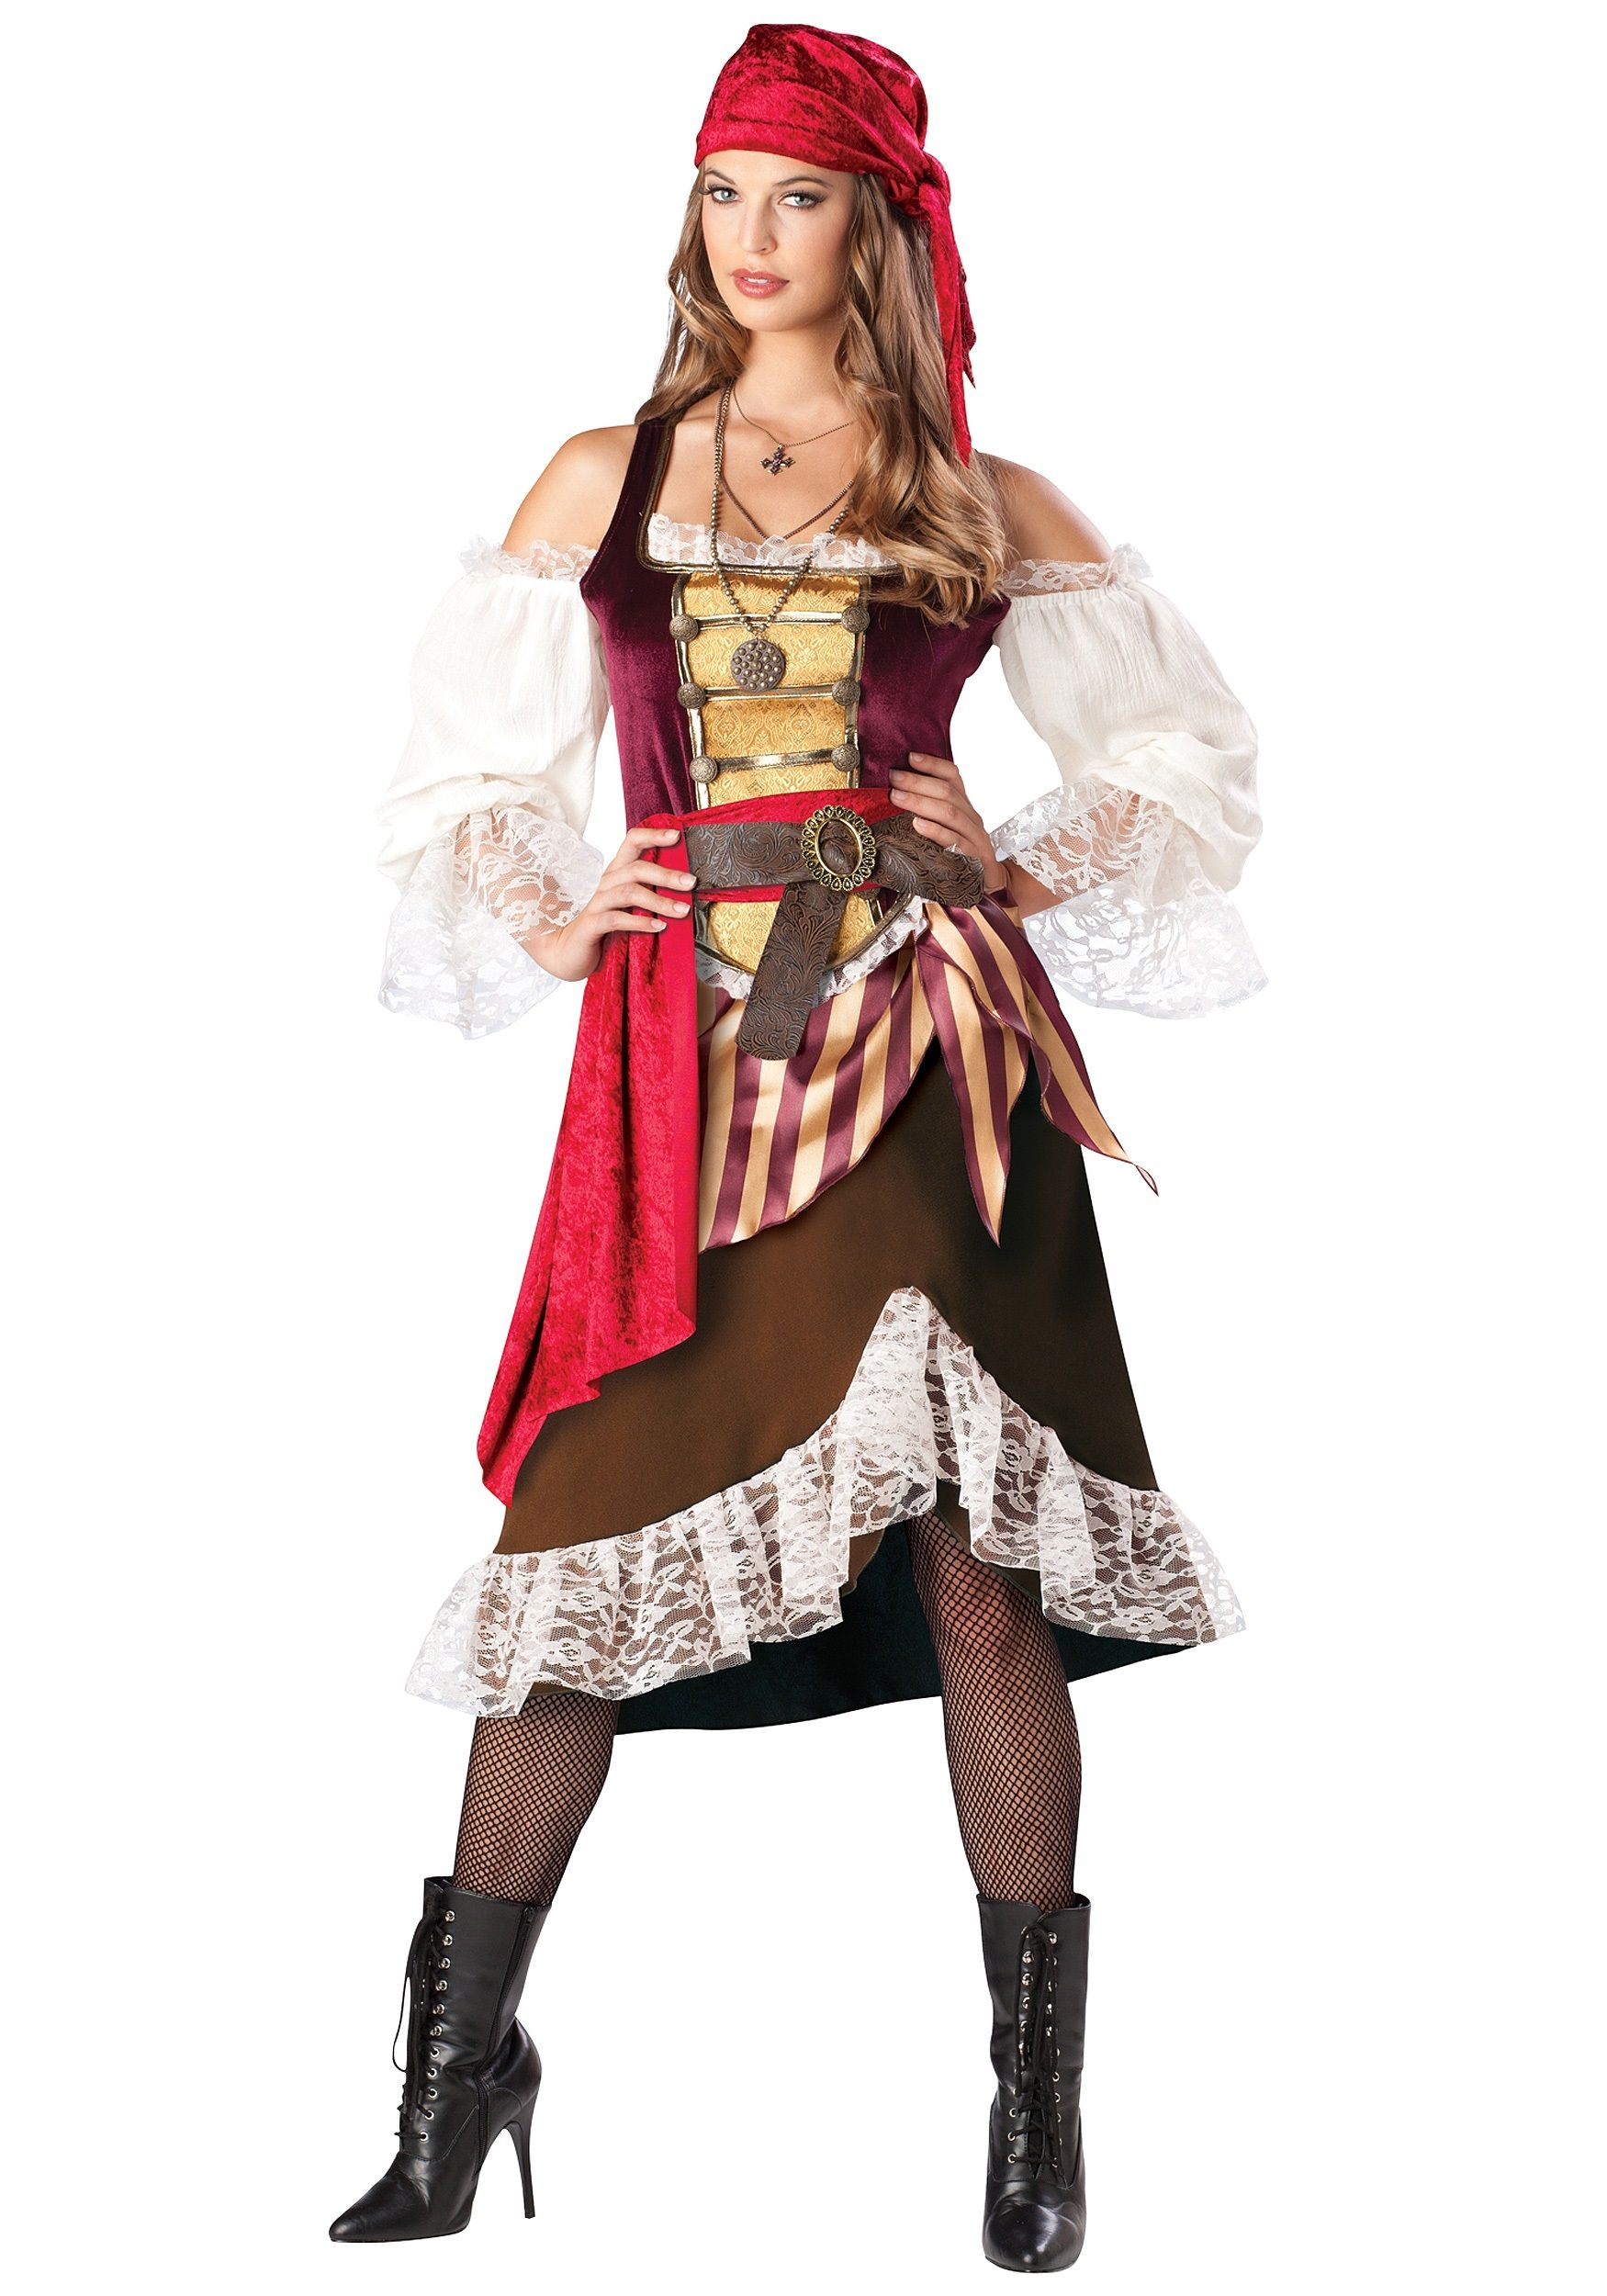 famous saloon girls home halloween costume ideas historical costumes pirate costumes adult - Pirate Halloween Costume For Women